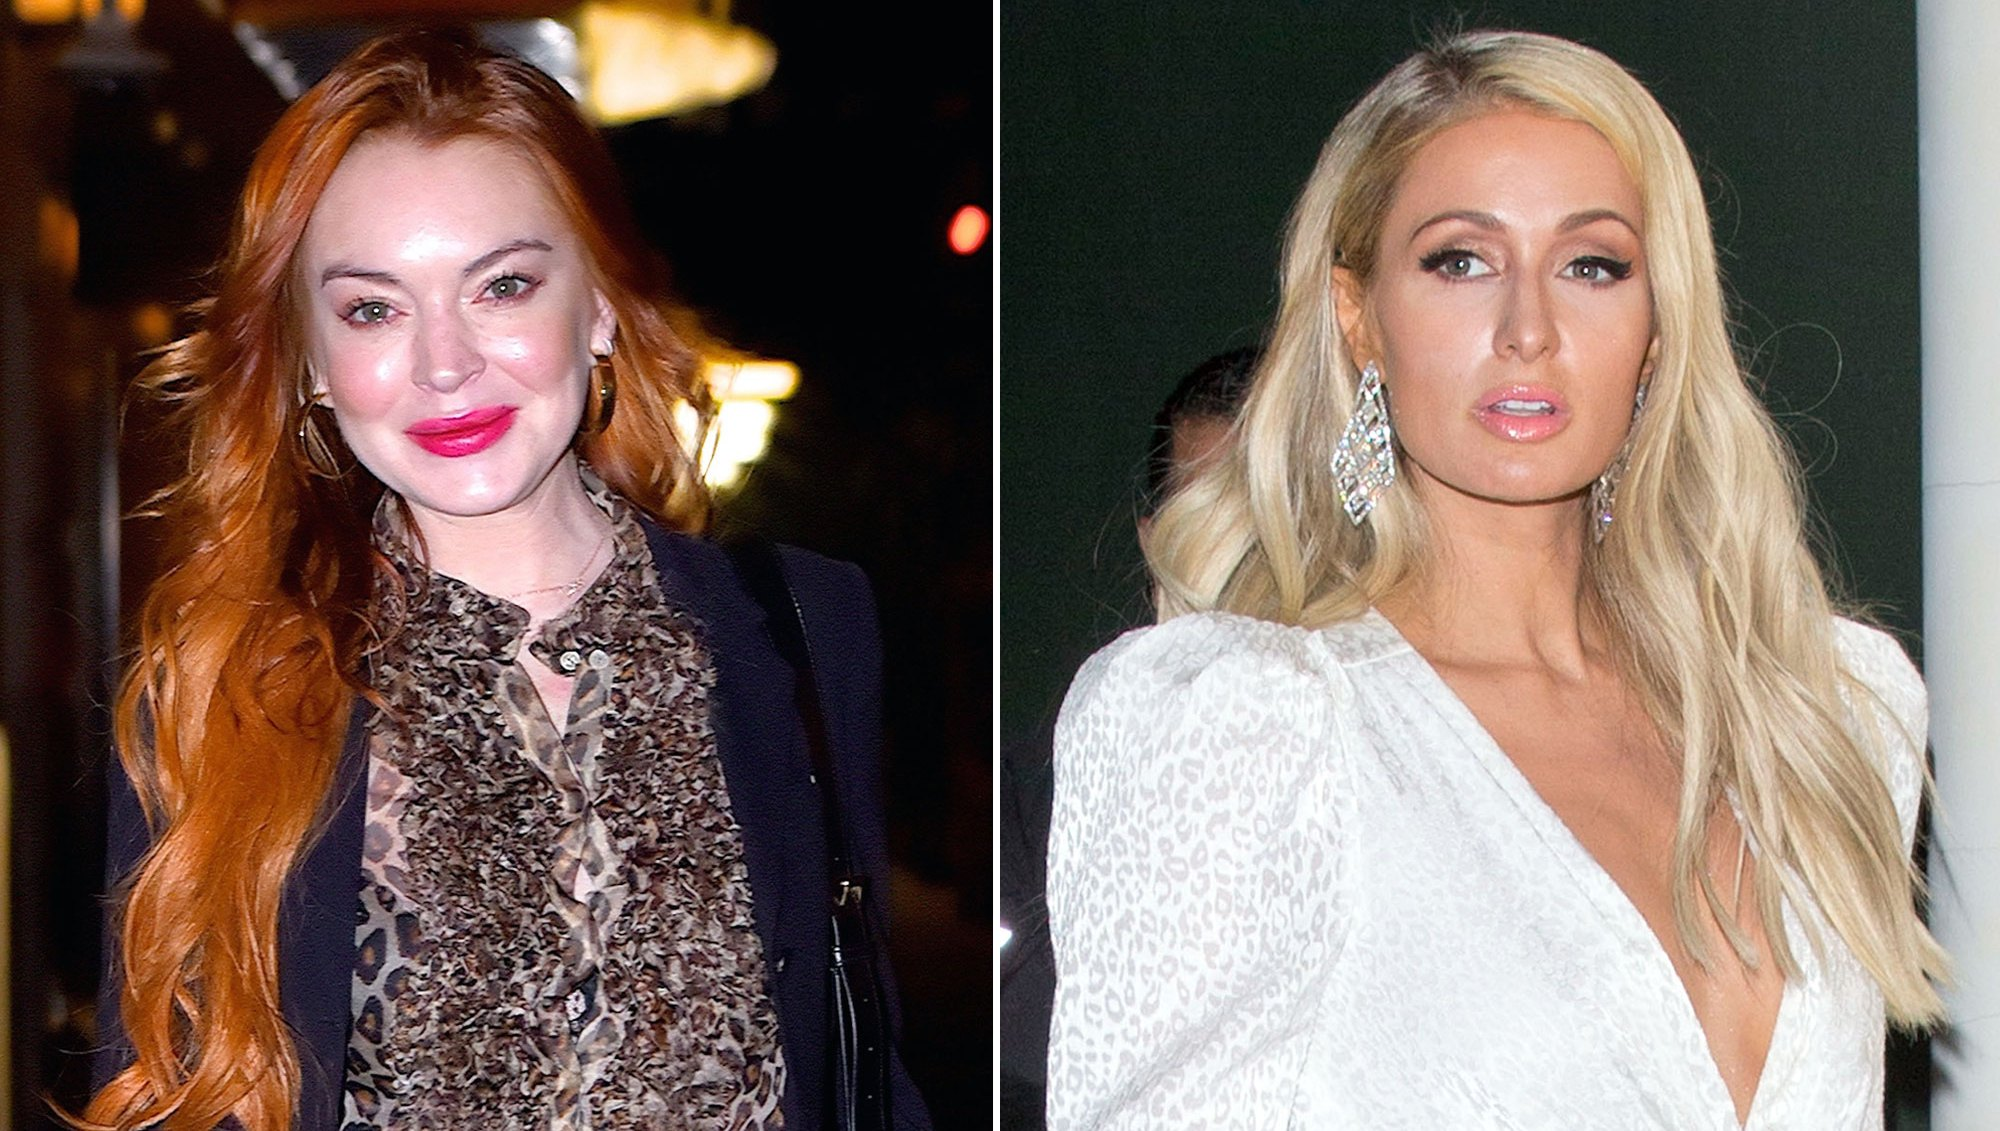 Lindsay Lohan Shares Throwback Photo With 'Love' Paris Hilton Amid Feud 'Friends Are True'